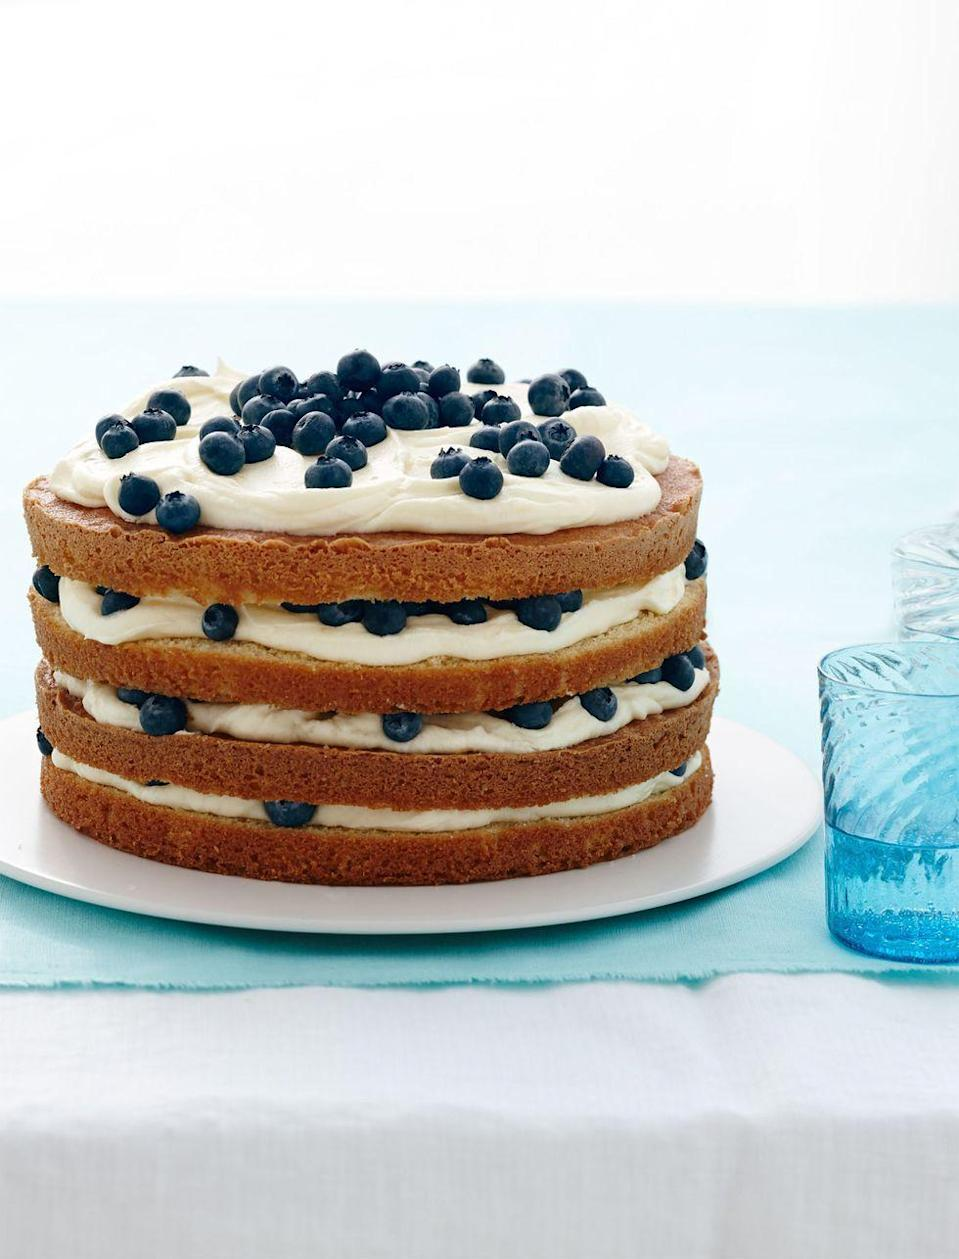 """<p>Ree Drummund uses strawberries instead of blueberries in this recipe for an all-seasons treat. Try a combo of the two for red and blue layers!</p><p><em><a href=""""https://www.goodhousekeeping.com/food-recipes/a15612/lemon-blueberry-layer-cake-recipe-wdy0414/"""" rel=""""nofollow noopener"""" target=""""_blank"""" data-ylk=""""slk:Get the recipe for Lemon Blueberry Layer Cake »"""" class=""""link rapid-noclick-resp"""">Get the recipe for Lemon Blueberry Layer Cake »</a></em></p><p><strong>RELATED: </strong><a href=""""https://www.goodhousekeeping.com/food-recipes/dessert/g4195/lemon-desserts/"""" rel=""""nofollow noopener"""" target=""""_blank"""" data-ylk=""""slk:33 Best Easy and Refreshing Lemon Desserts to Make This Spring"""" class=""""link rapid-noclick-resp"""">33 Best Easy and Refreshing Lemon Desserts to Make This Spring</a><br></p>"""